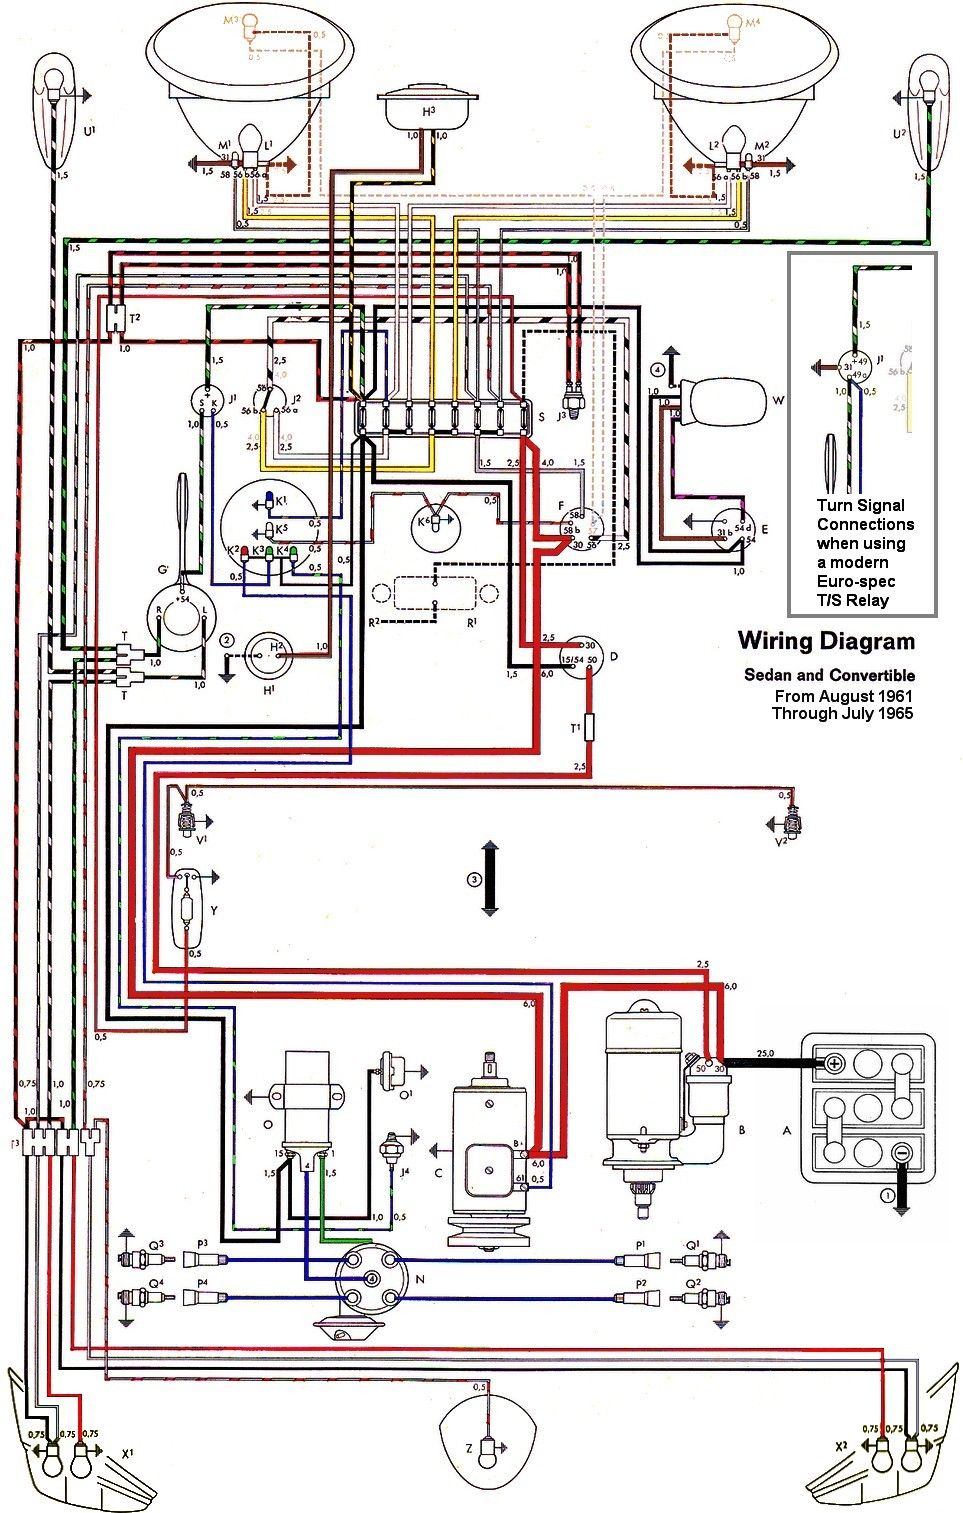 2235472c26e9b61112a110100d6ddea3 wiring diagram vw beetle sedan and convertible 1961 1965 vw vw